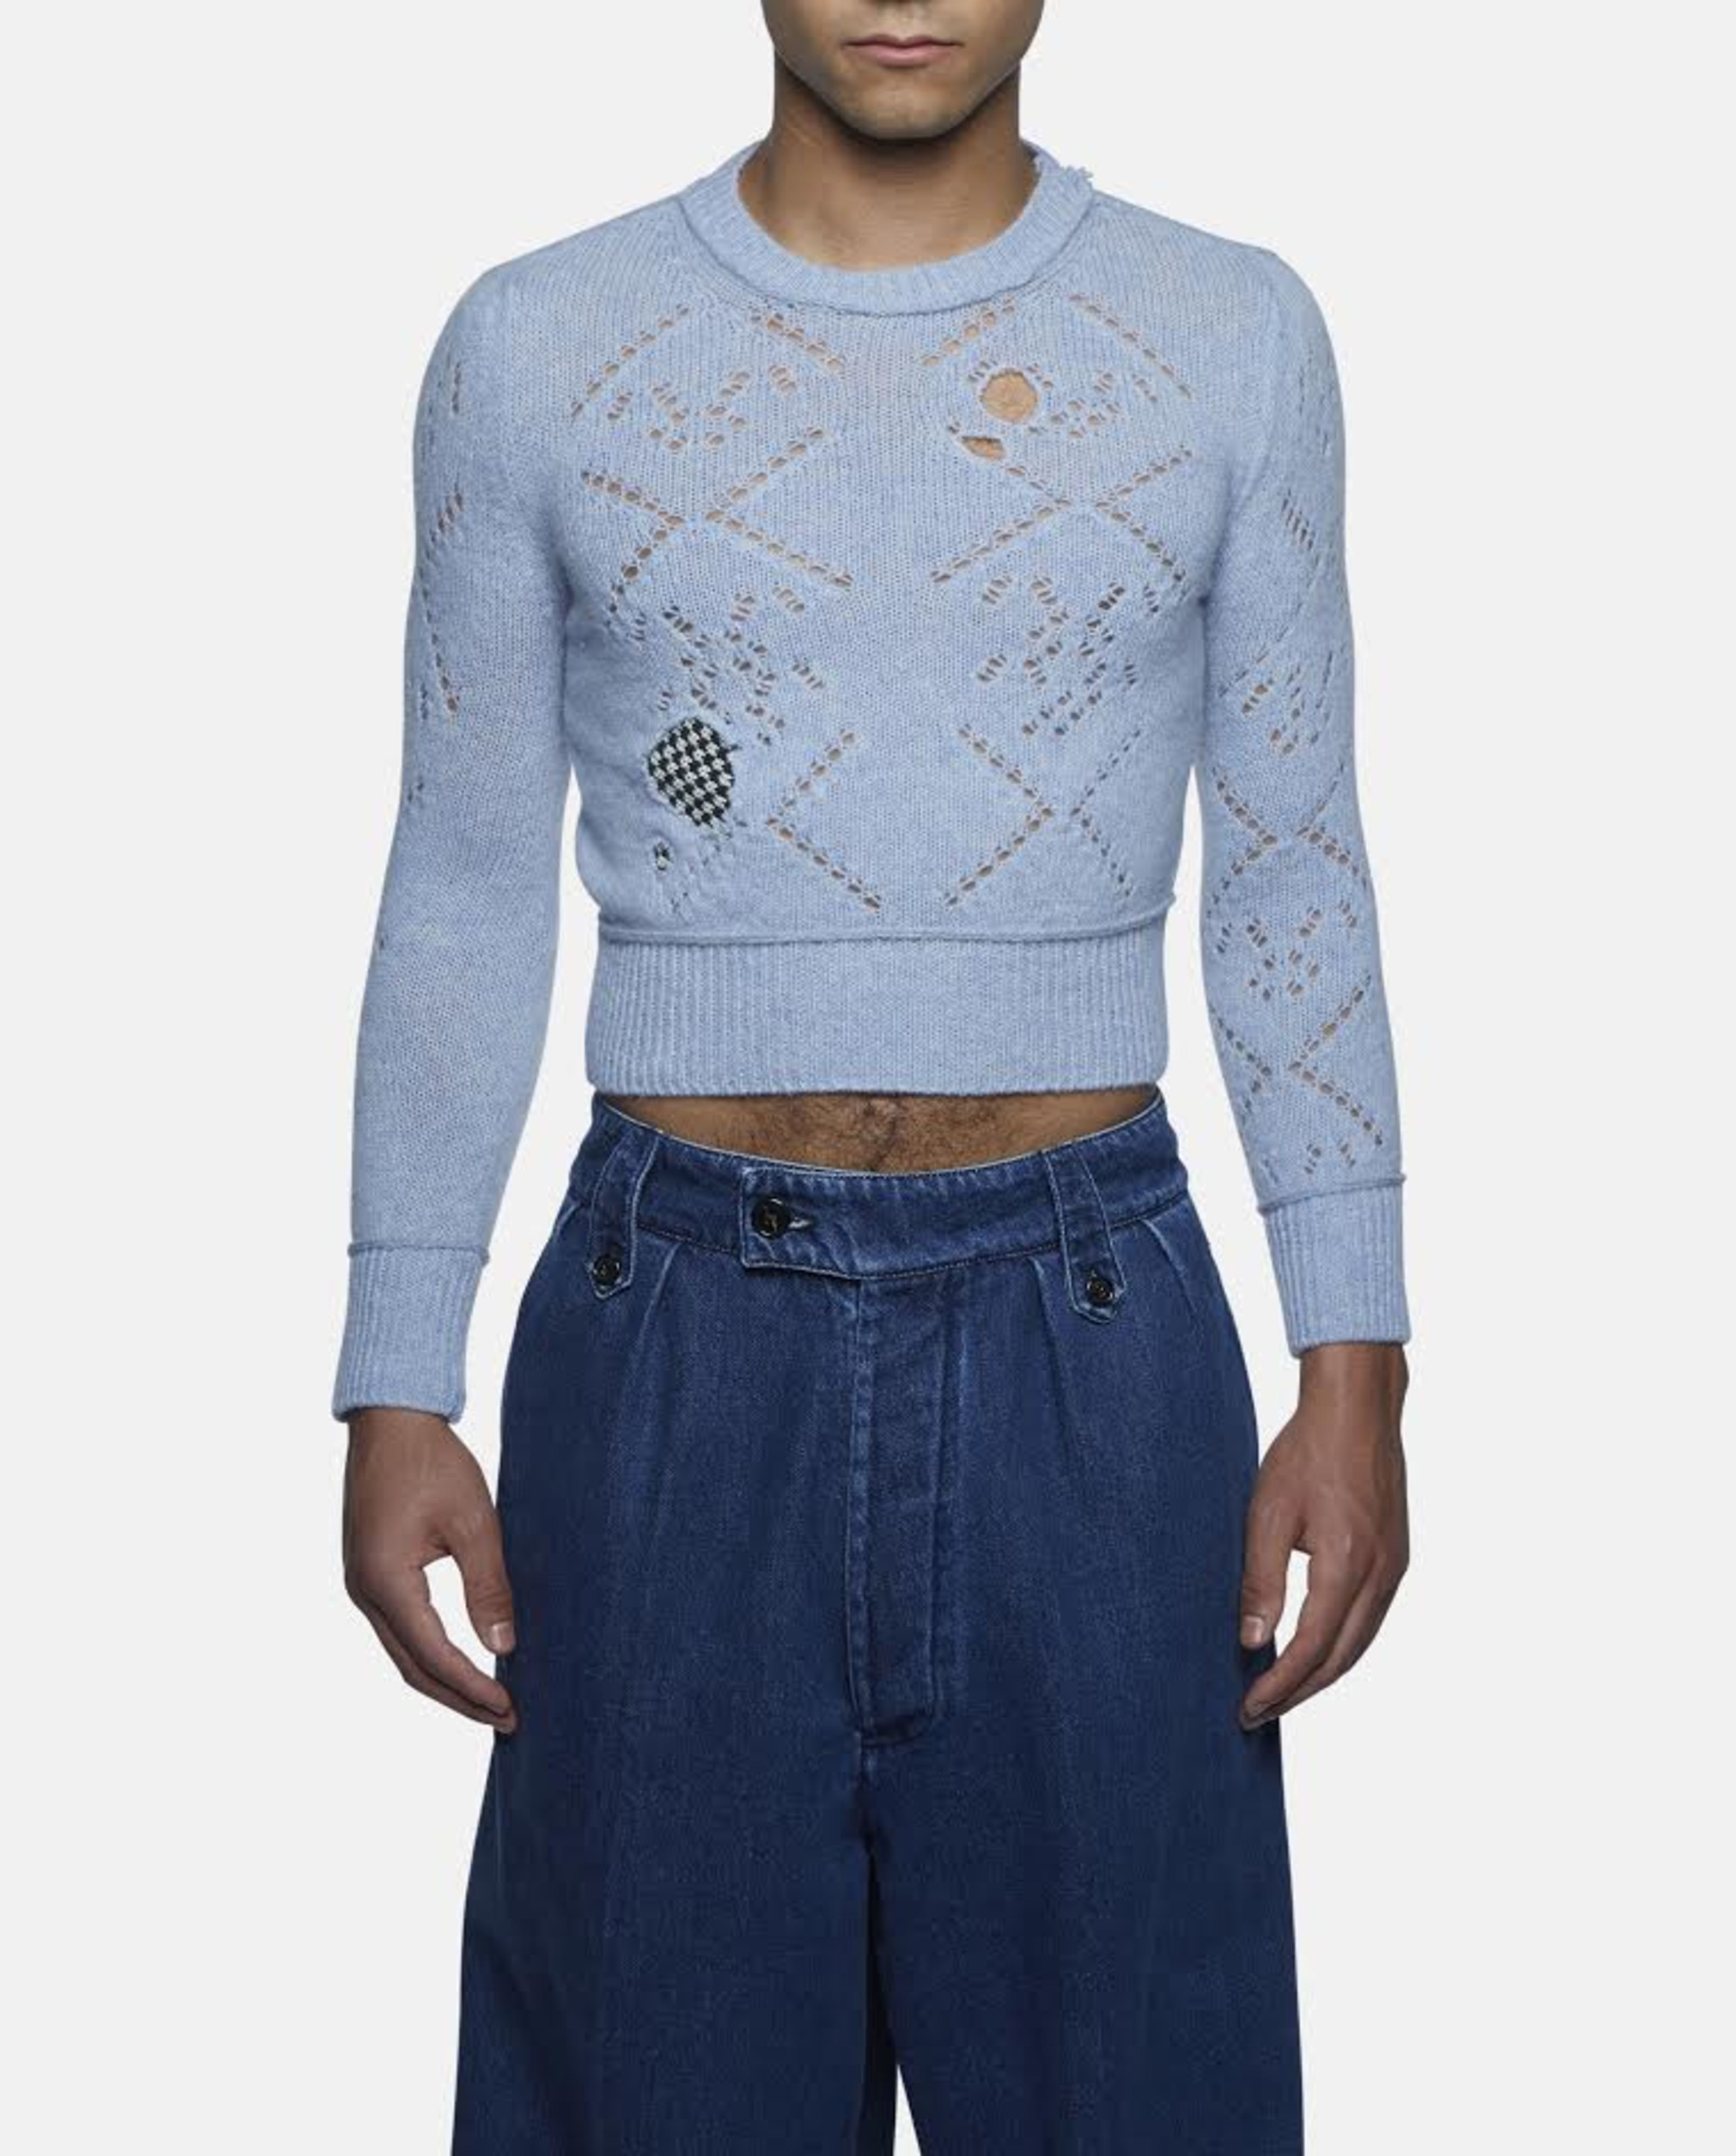 Raf simons Blue 'destroyed' Cropped Roundneck Sweater in Blue for ...